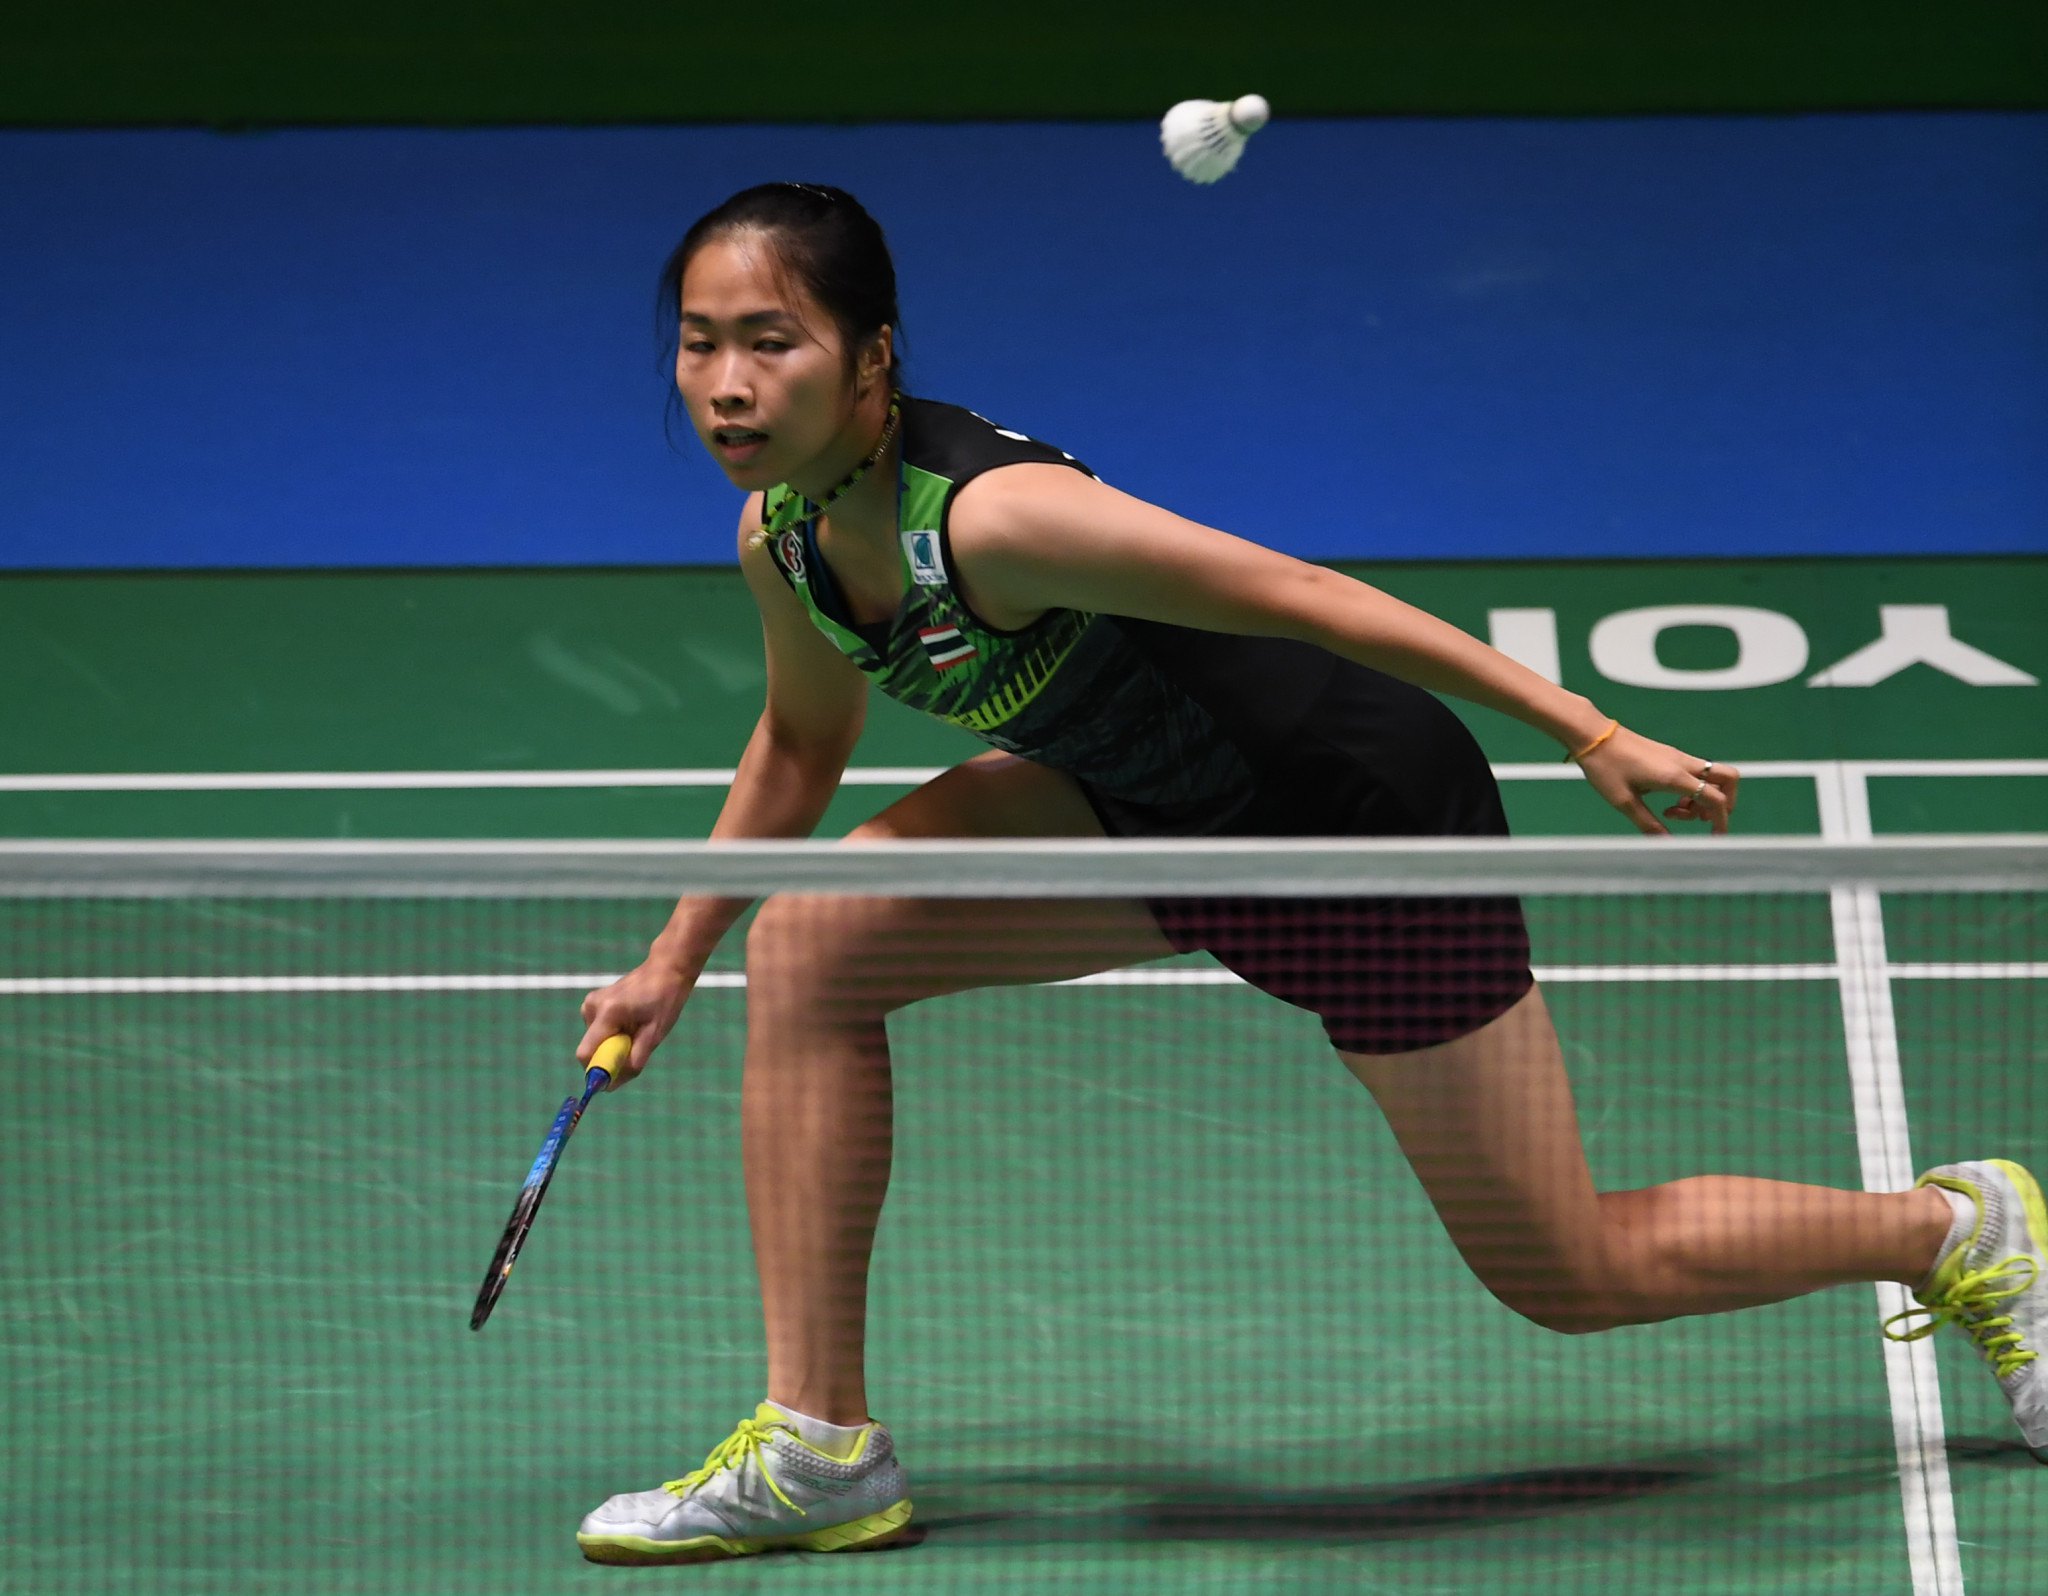 Thailand's Ratchanok Intanon secured the women's singles title ©Getty Images